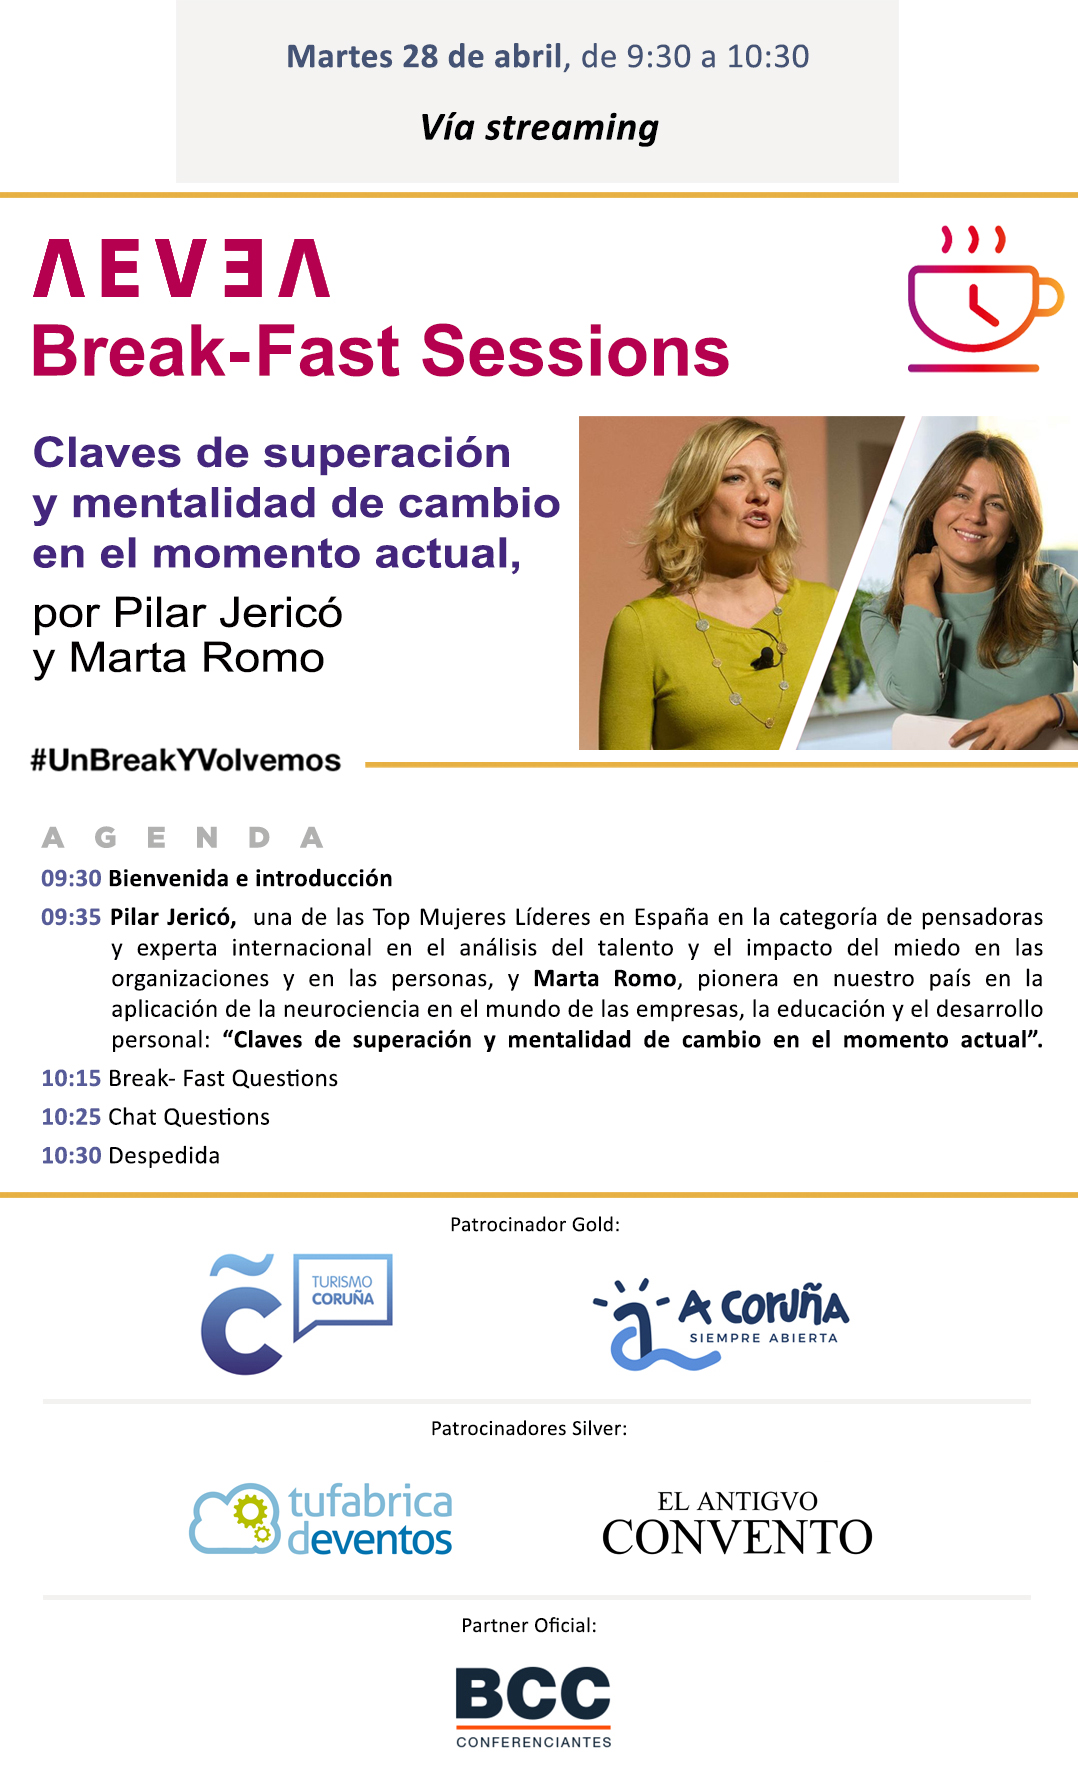 AEVEA Break-Fast Sessions